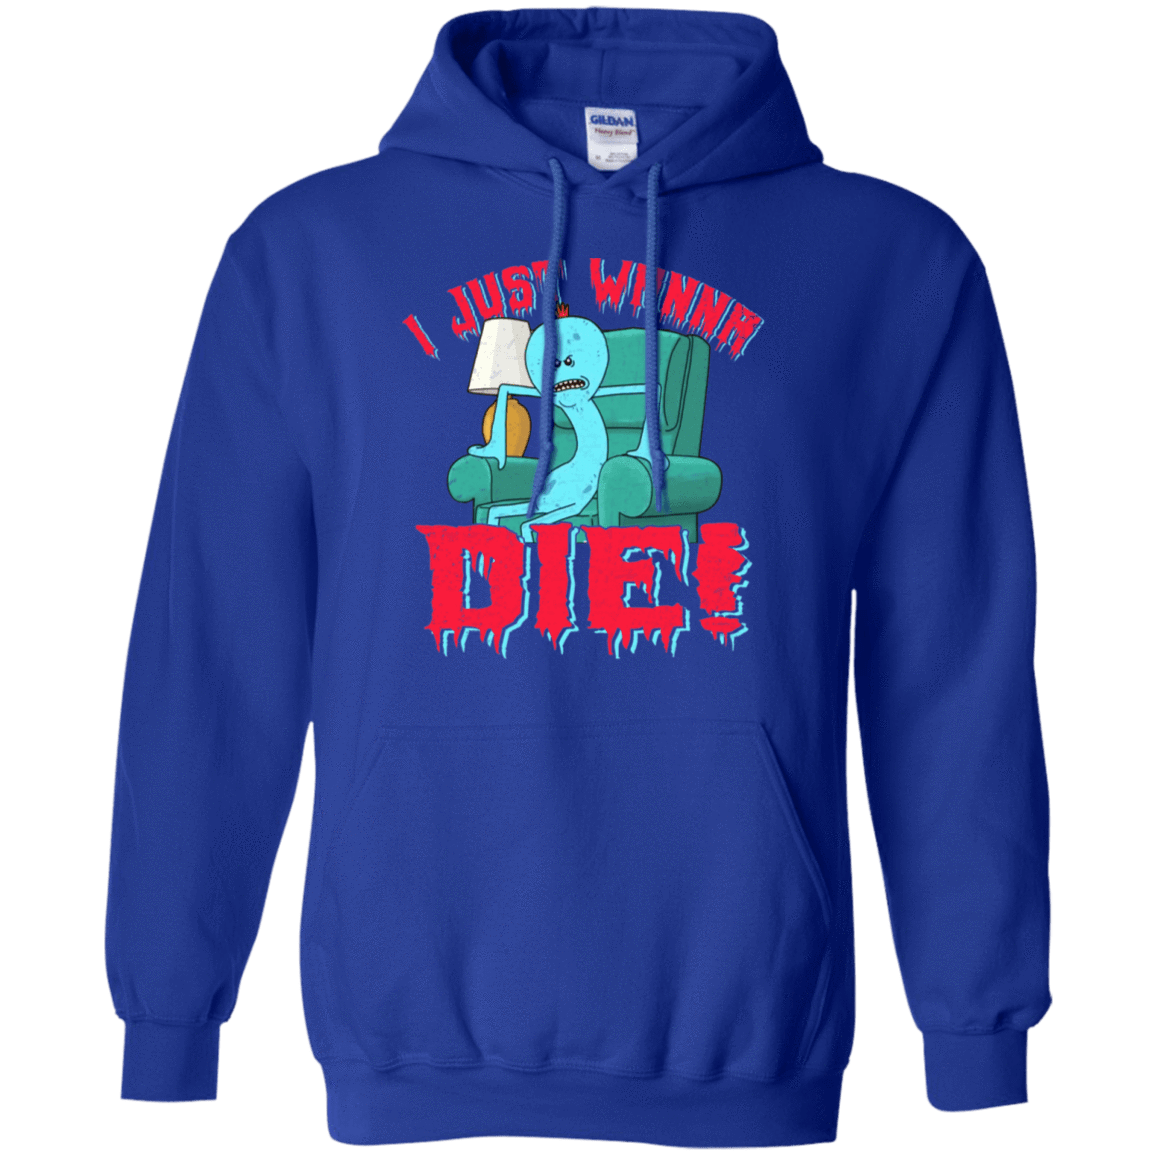 Rick And Morty: I Just Wanna Die T-Shirts, Hoodie, Tank 541-4765-77675107-23175 - Tee Ript